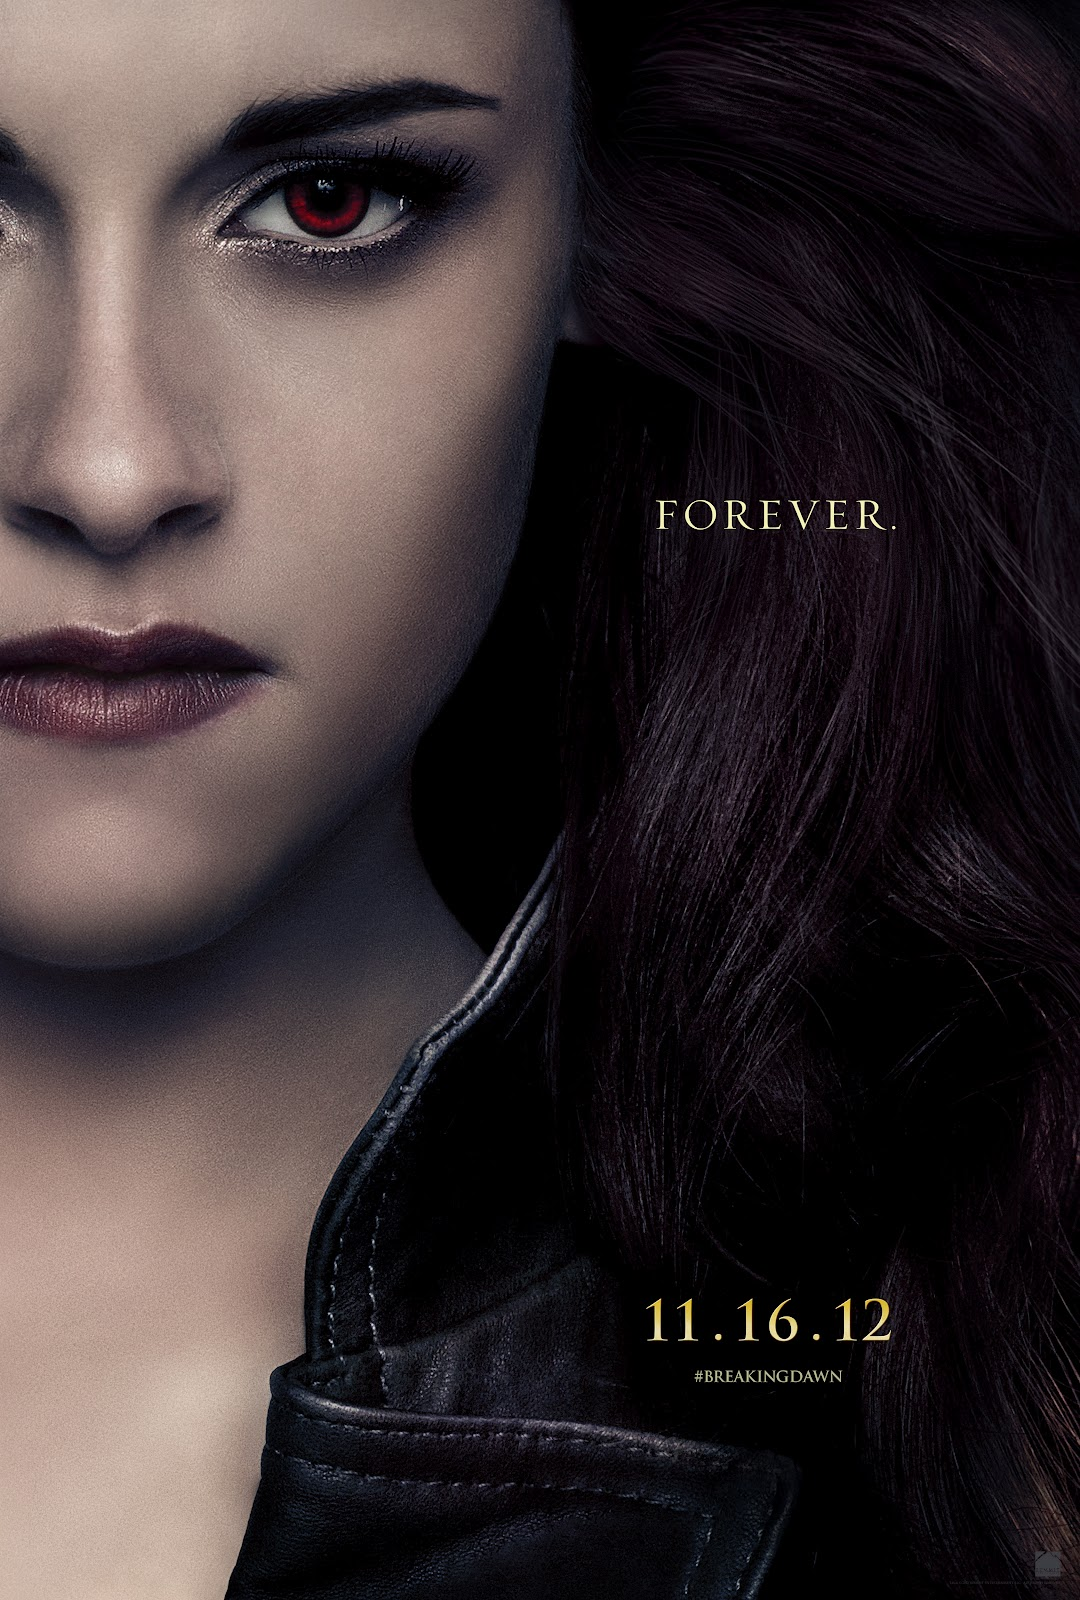 http://4.bp.blogspot.com/-KkW1AR9QfBk/UBaU3-L4FAI/AAAAAAAAA3o/KByczKuccXg/s1600/the-twilight-saga-breaking-dawn-part-2-TSBD2_1SHT_DIG_BELLA_dm13_FIN_rgb.jpg